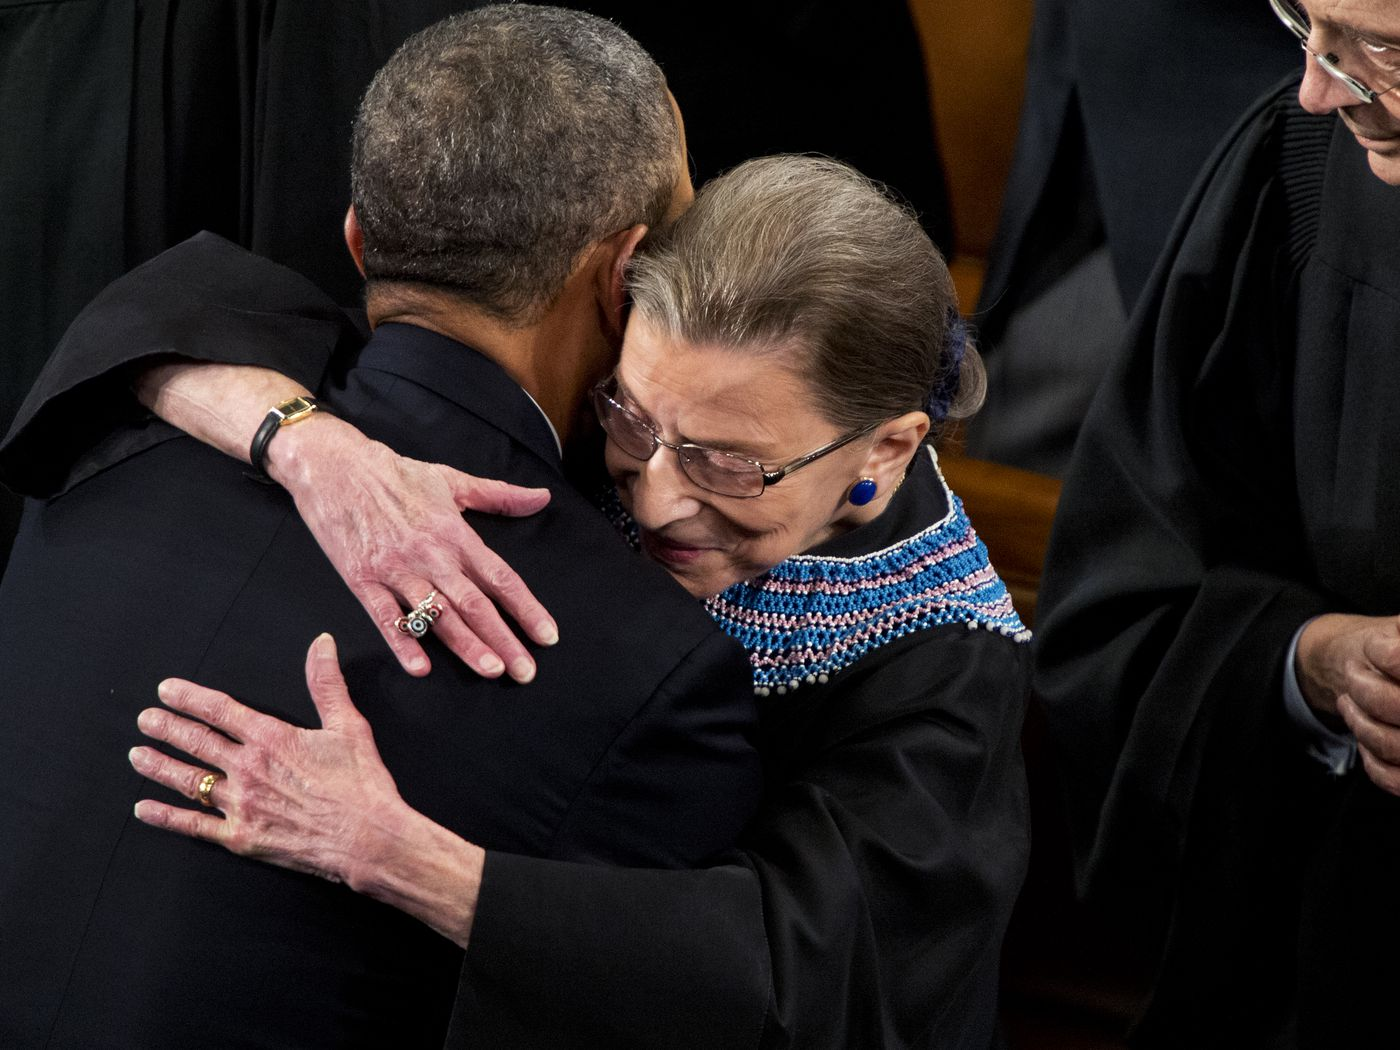 Obama Ruth Bader Ginsburg S Successor Should Be Appointed By The Election Winner Vox